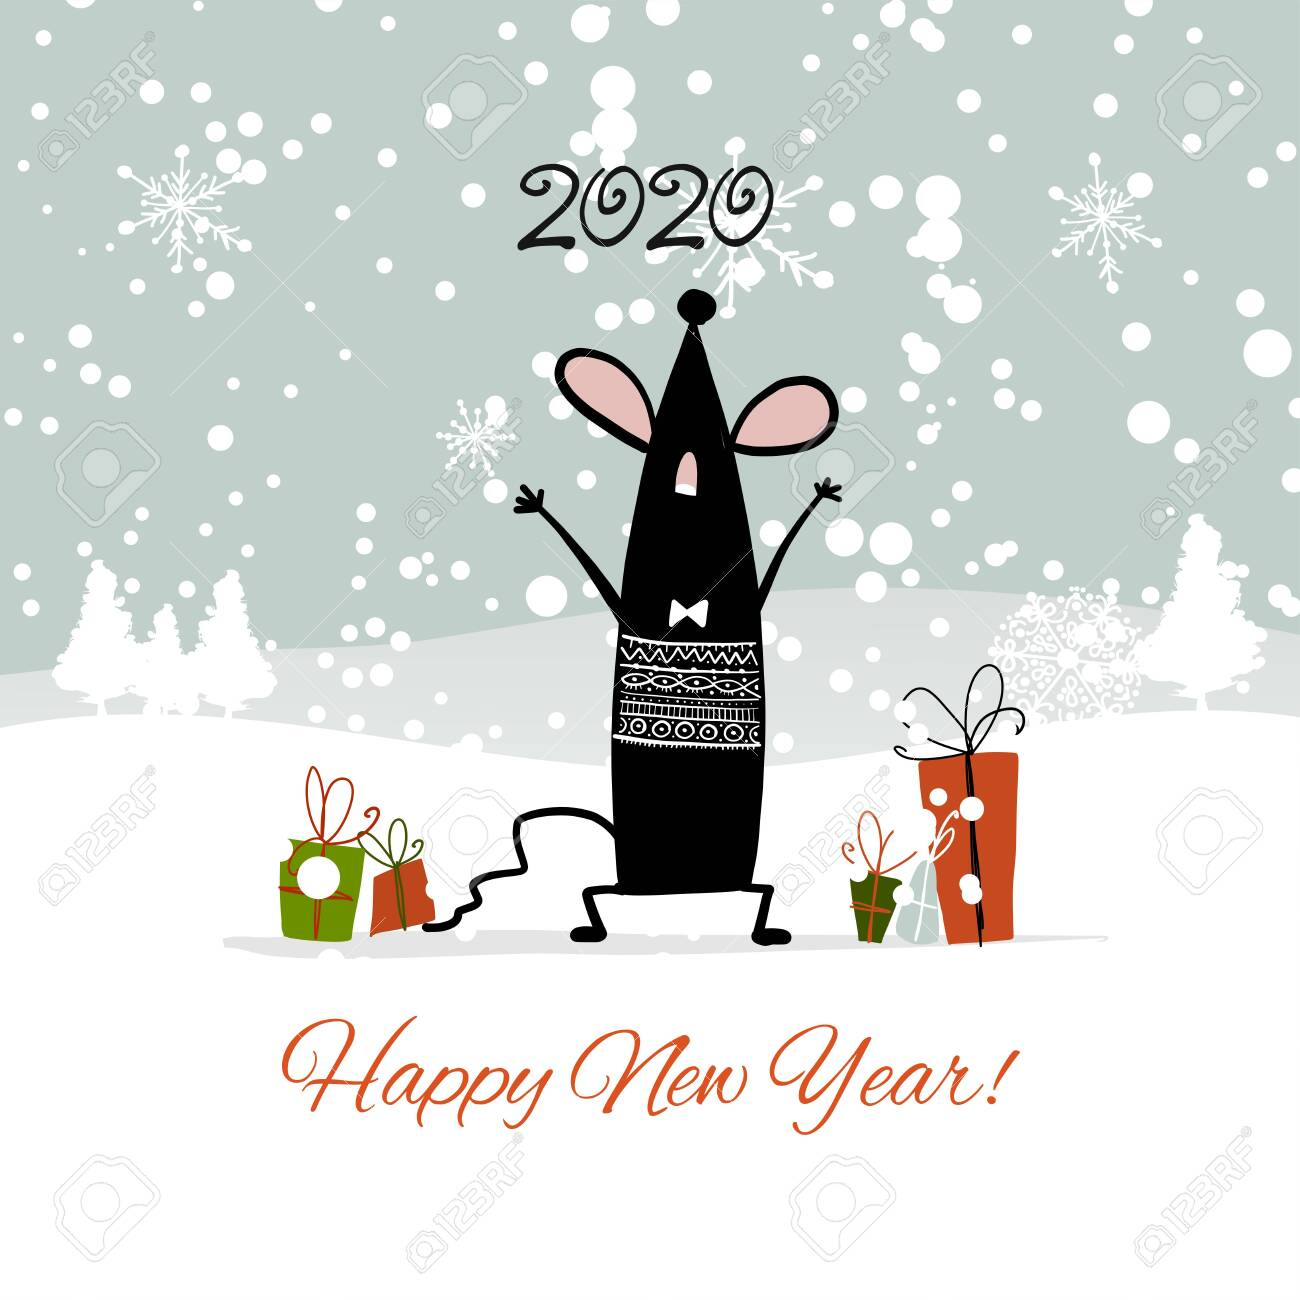 Unique Christmas Cards 2020 Christmas Card With Funny Mouse In Winter Forest, Symbol Of 2020